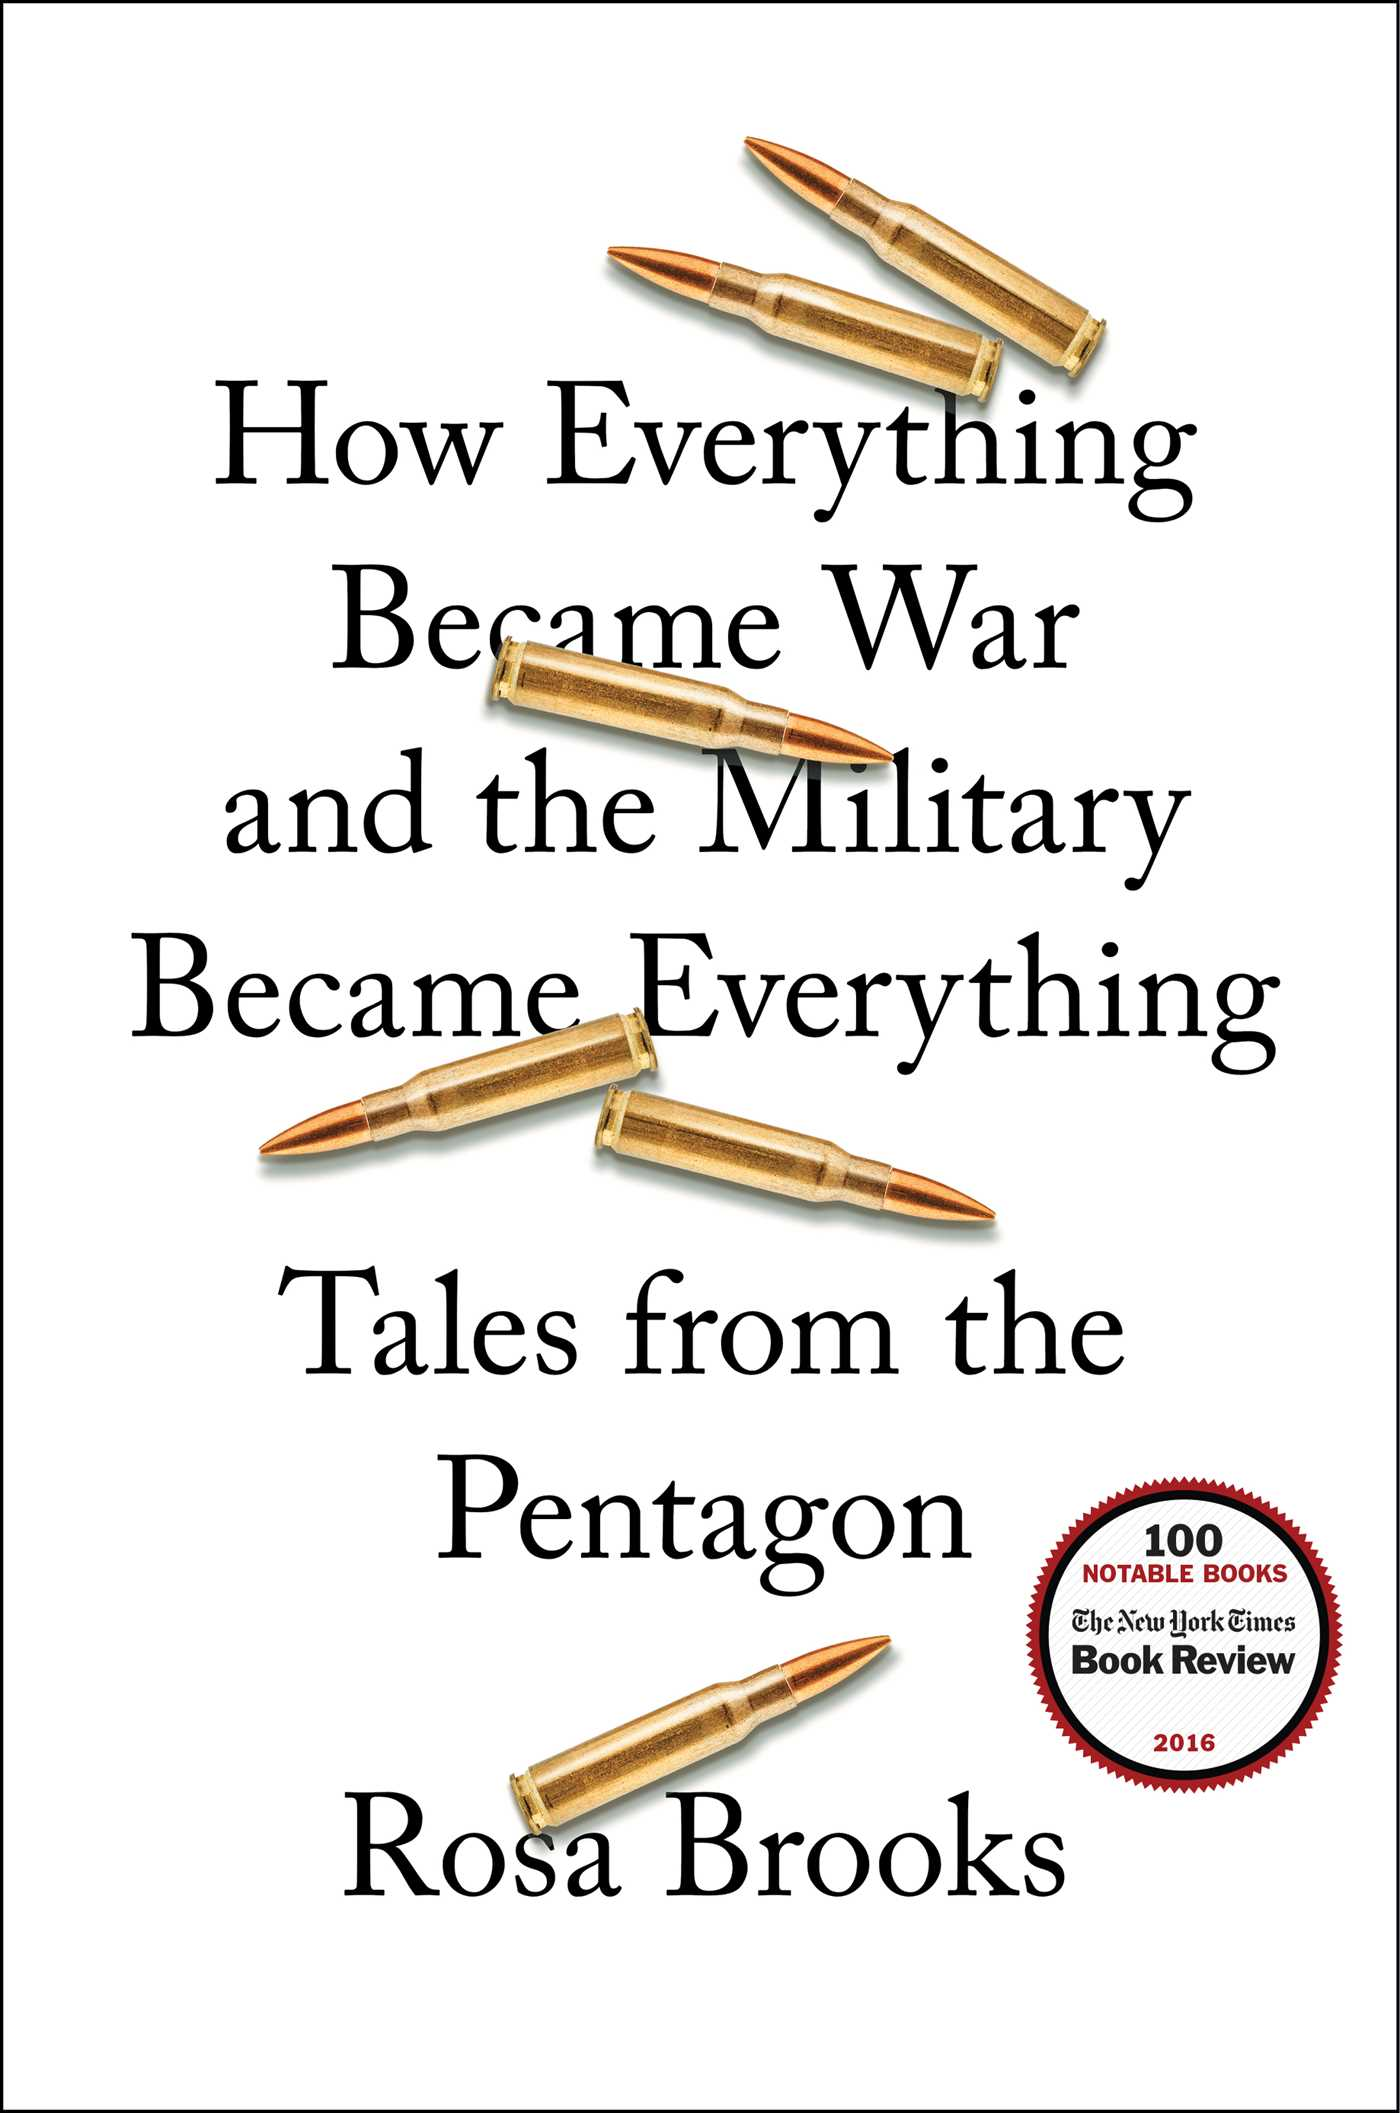 How everything became war and the military became everything 9781476777863 hr